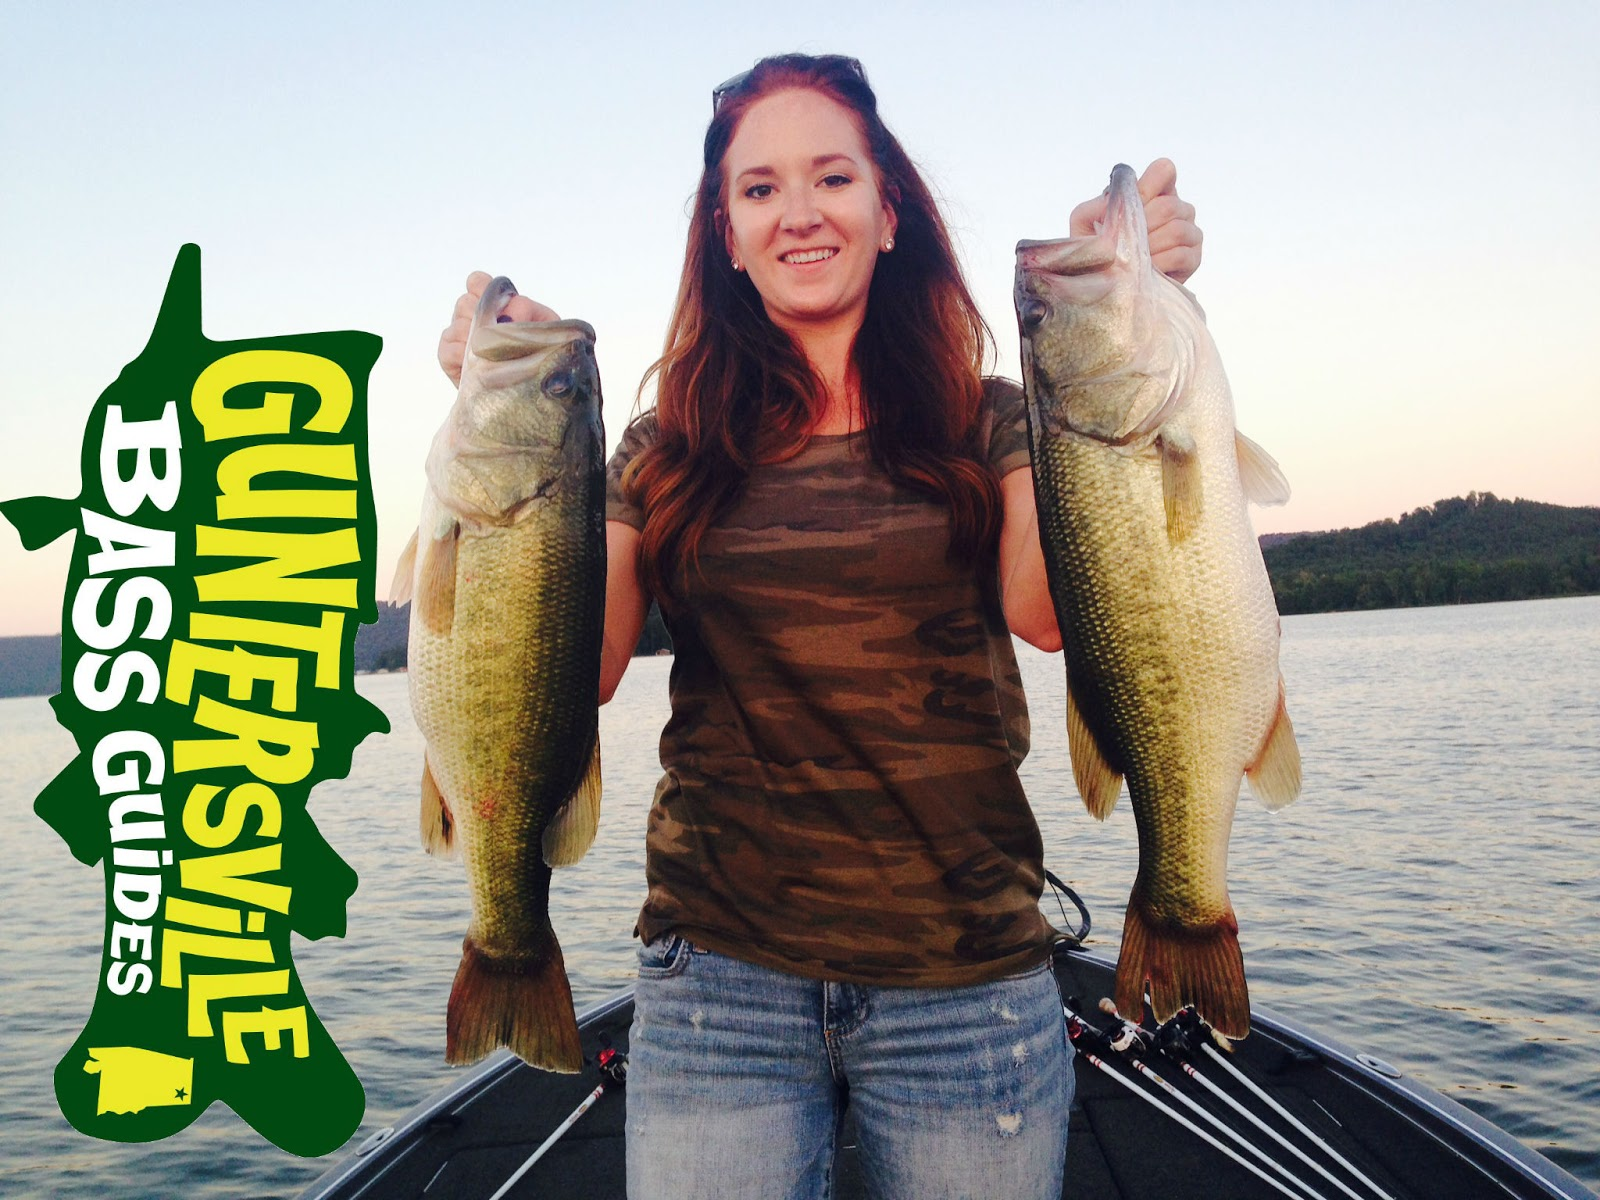 Lake guntersville fishing report for Fishing report lake guntersville